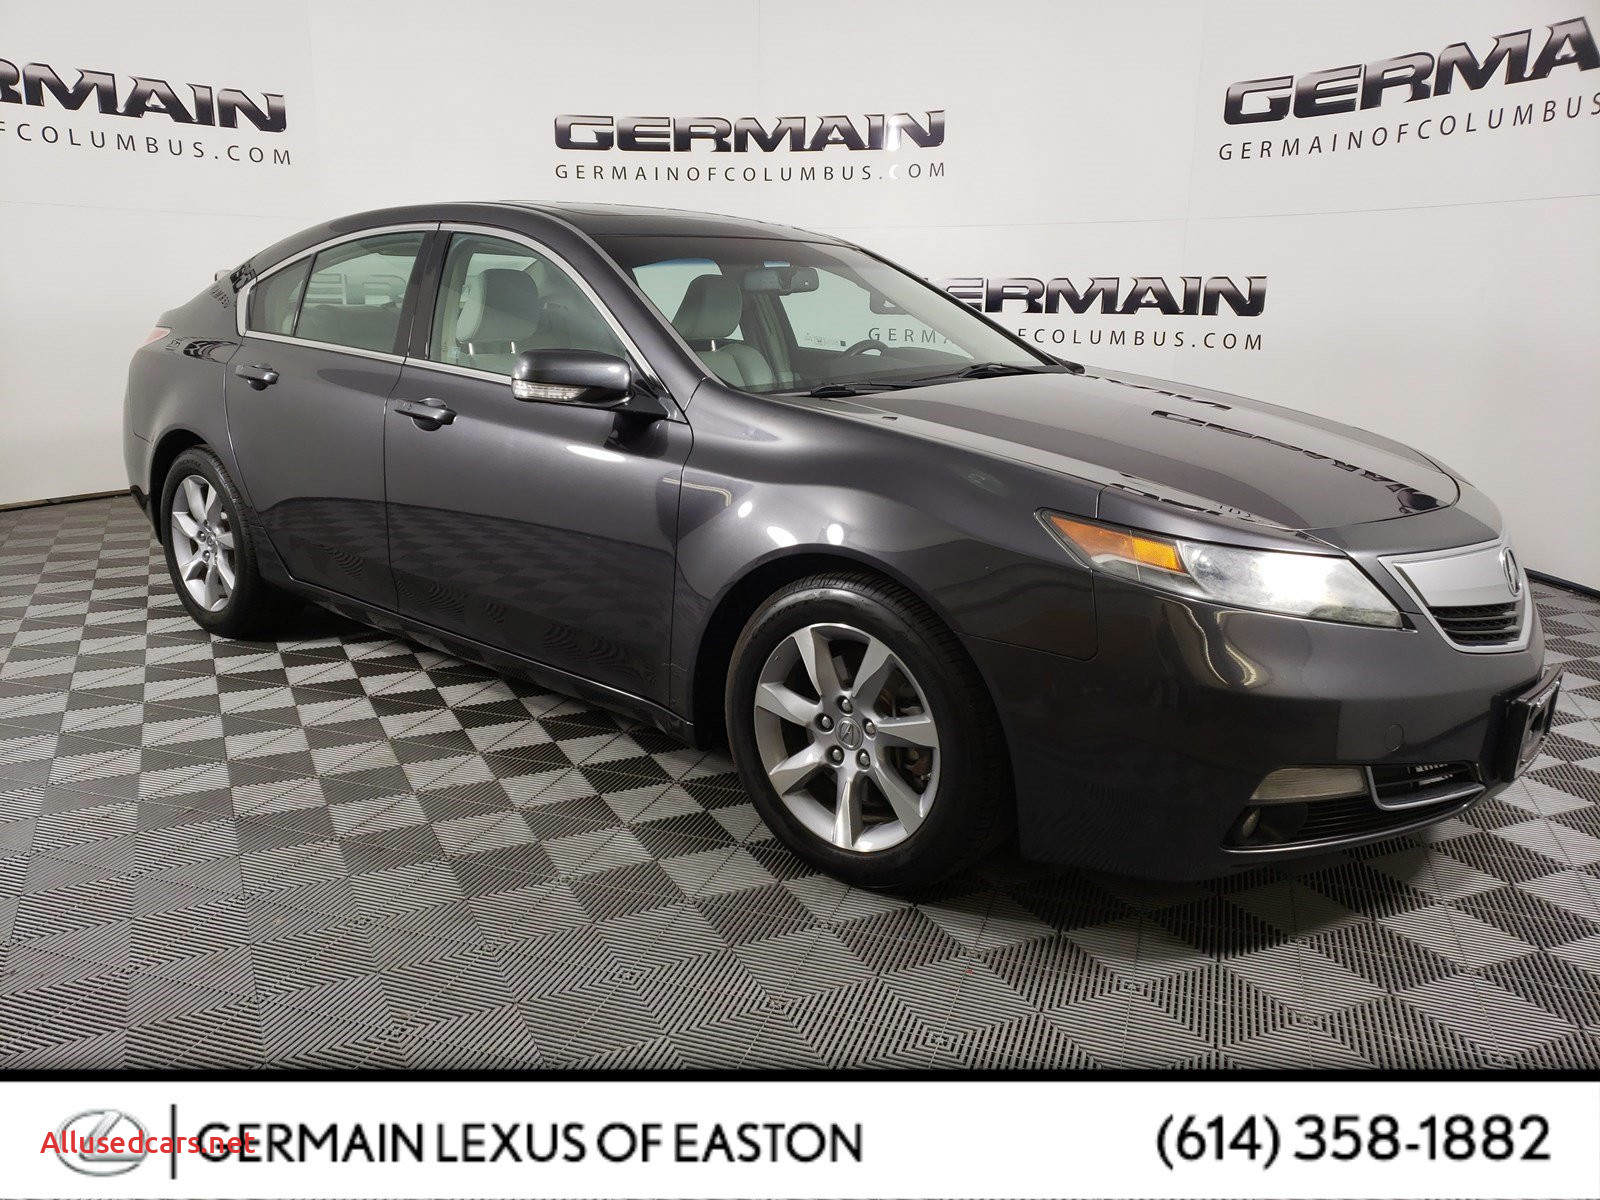 2009 Acura Tl Unique Pre Owned 2012 Acura Tl Tech Auto with Navigation